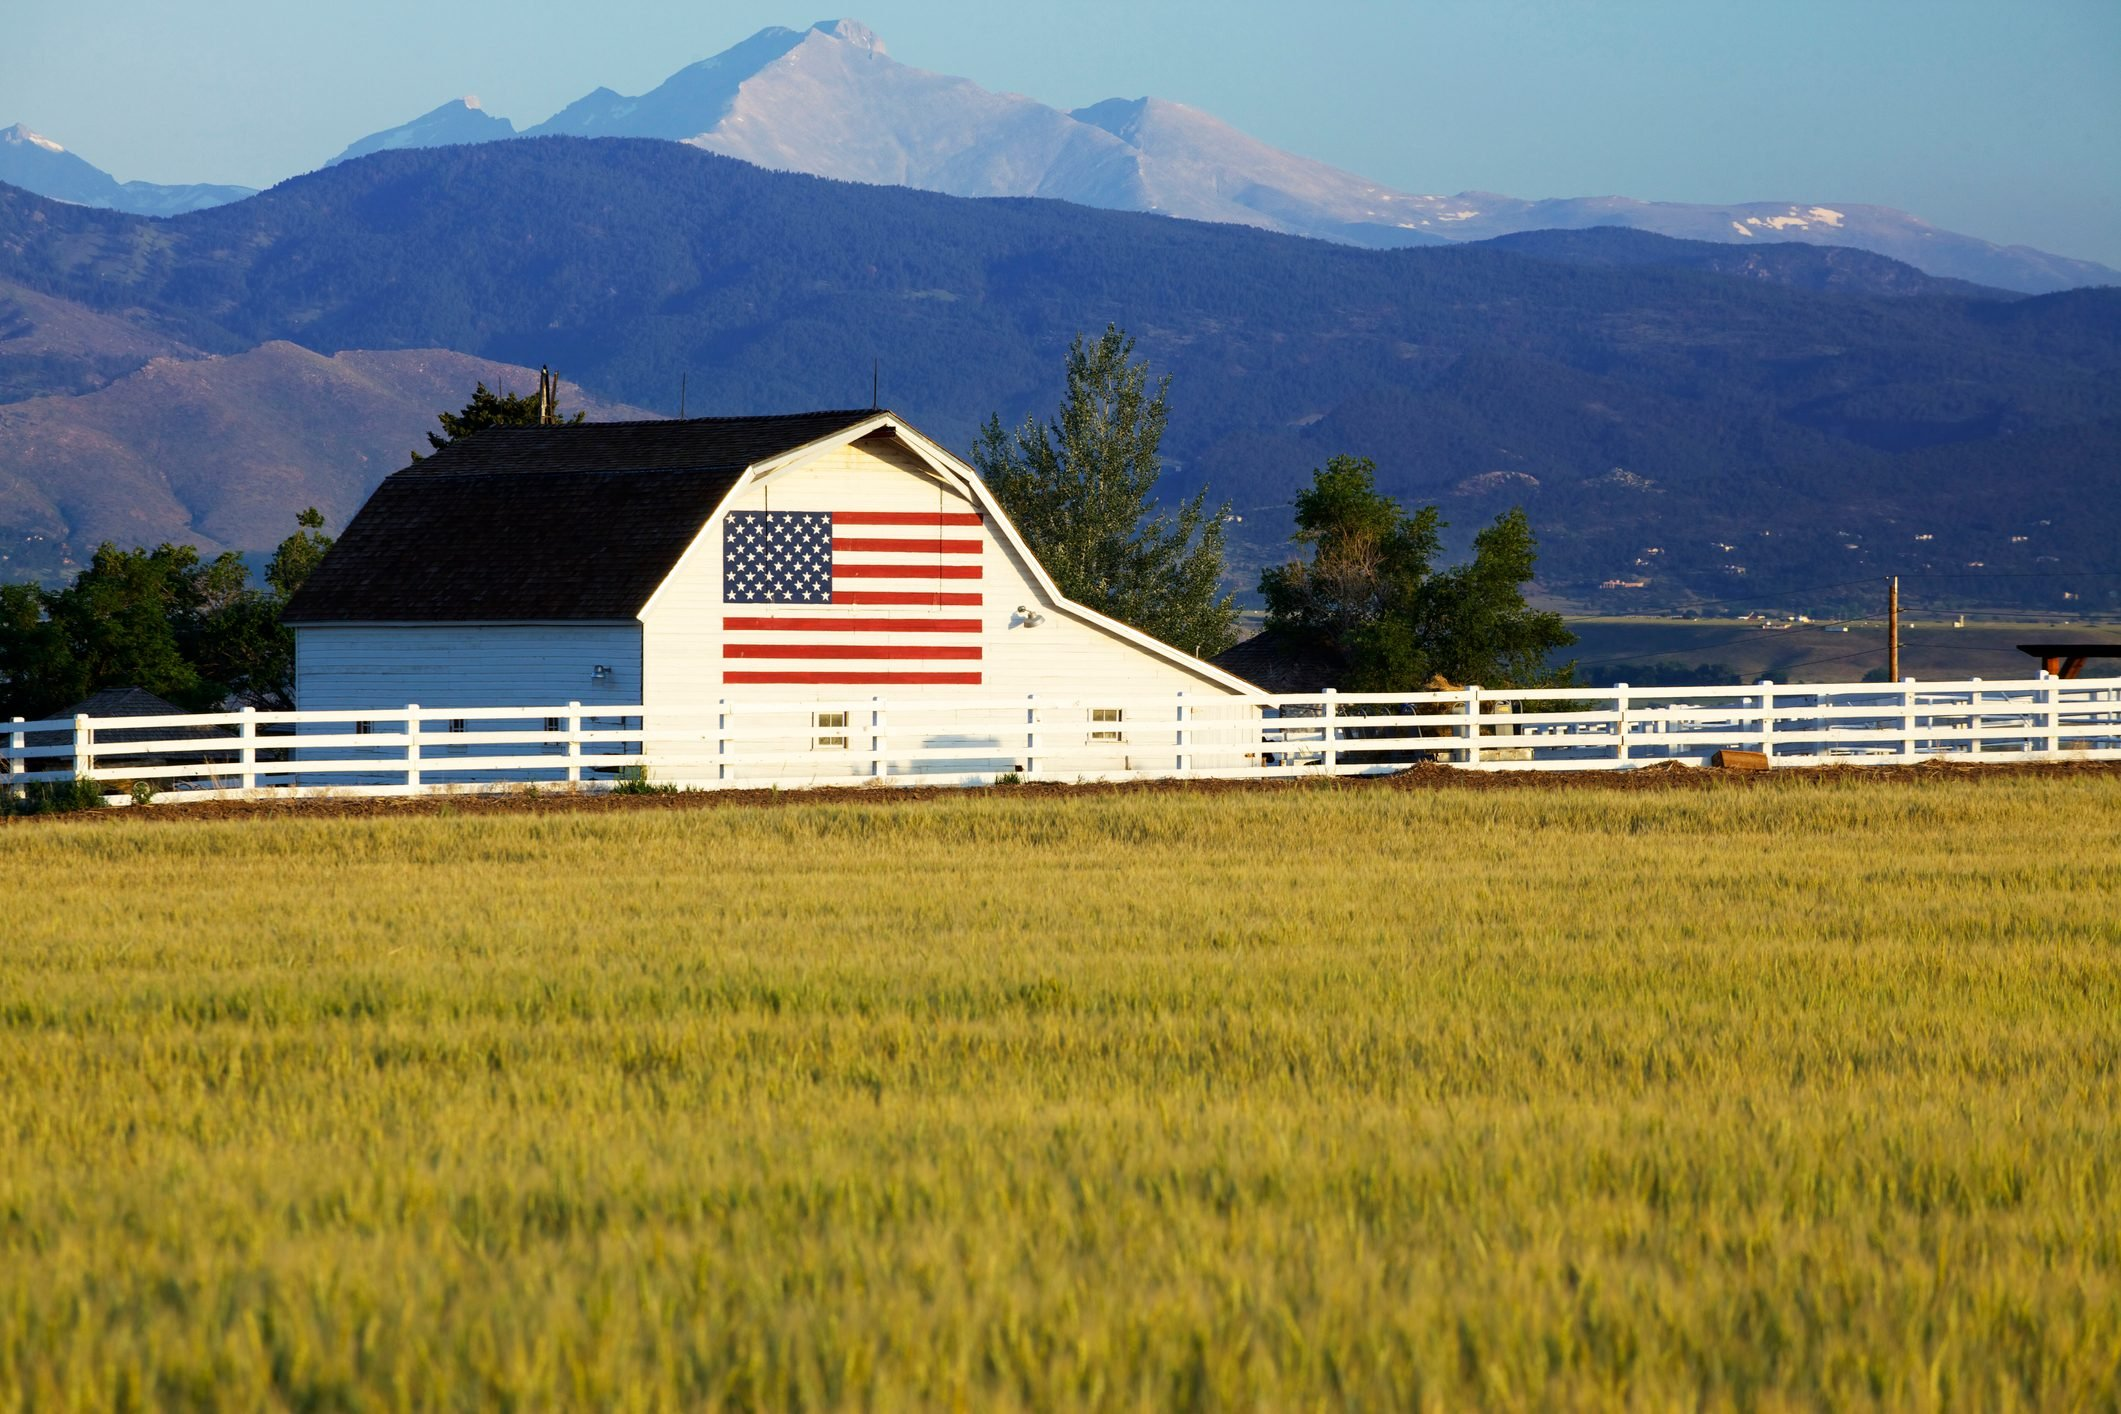 A landscape with a white barn with the American flag painted on the side standing in front of the Rocky Mountains of Colorado. Wheat field in foreground